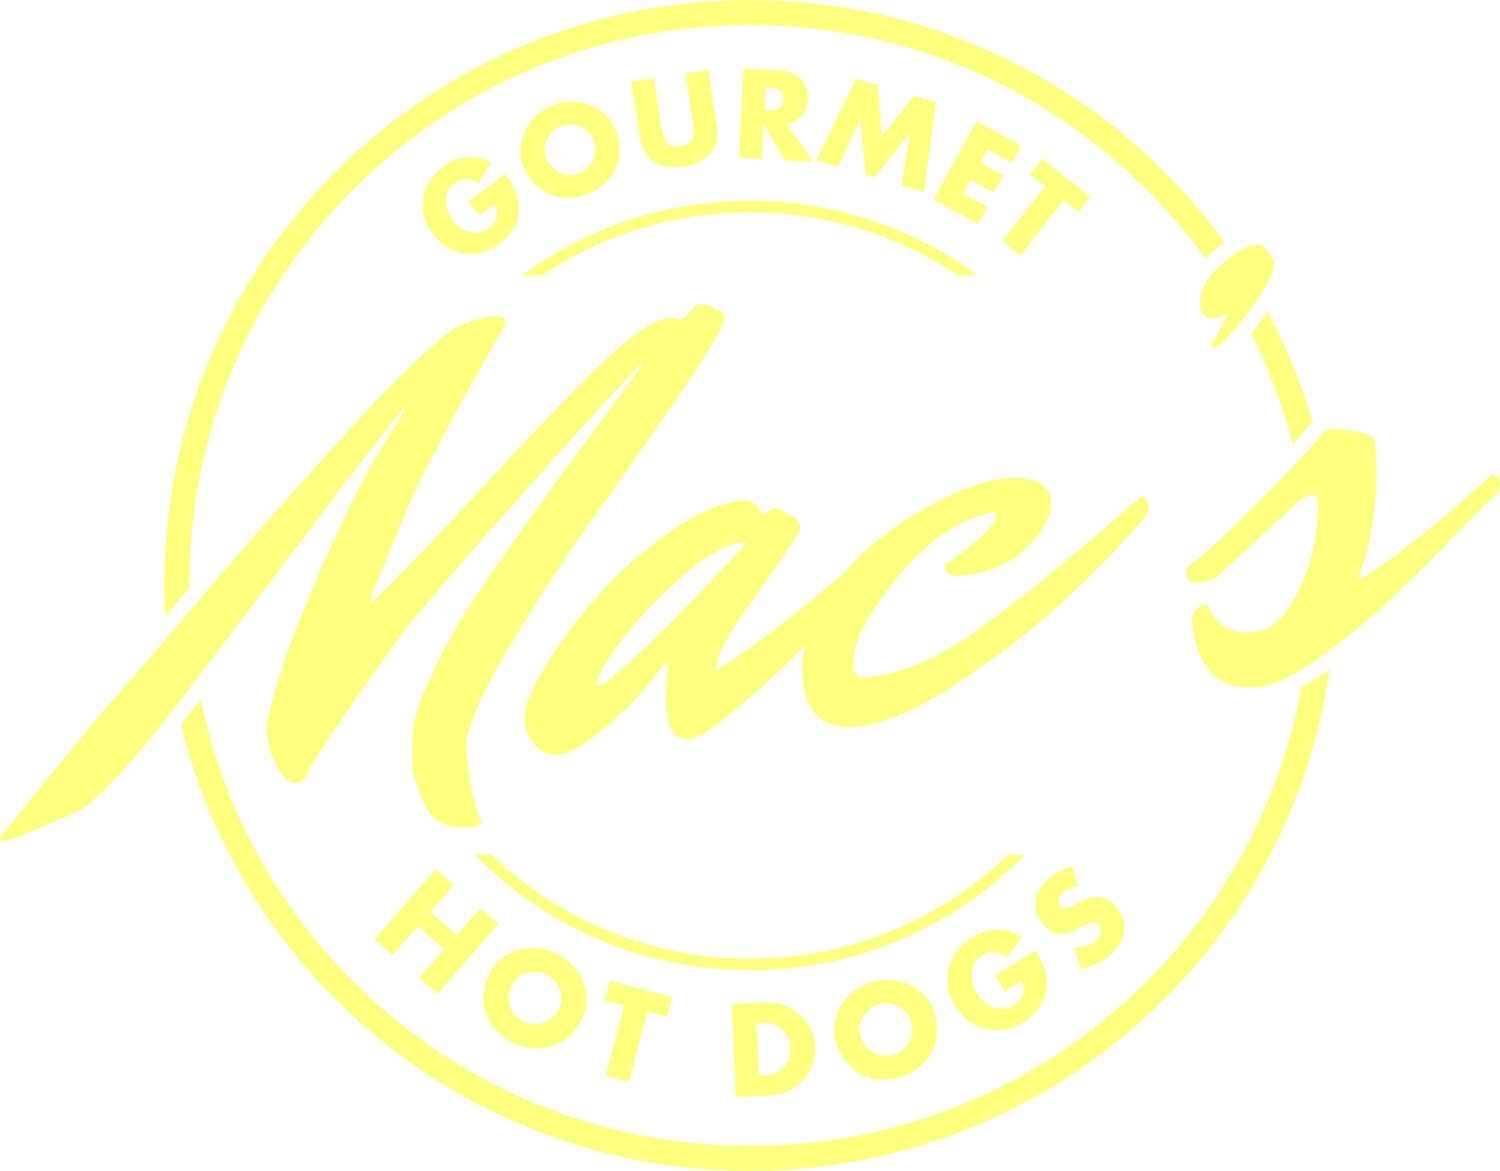 Mac's Gourmet Hot Dogs